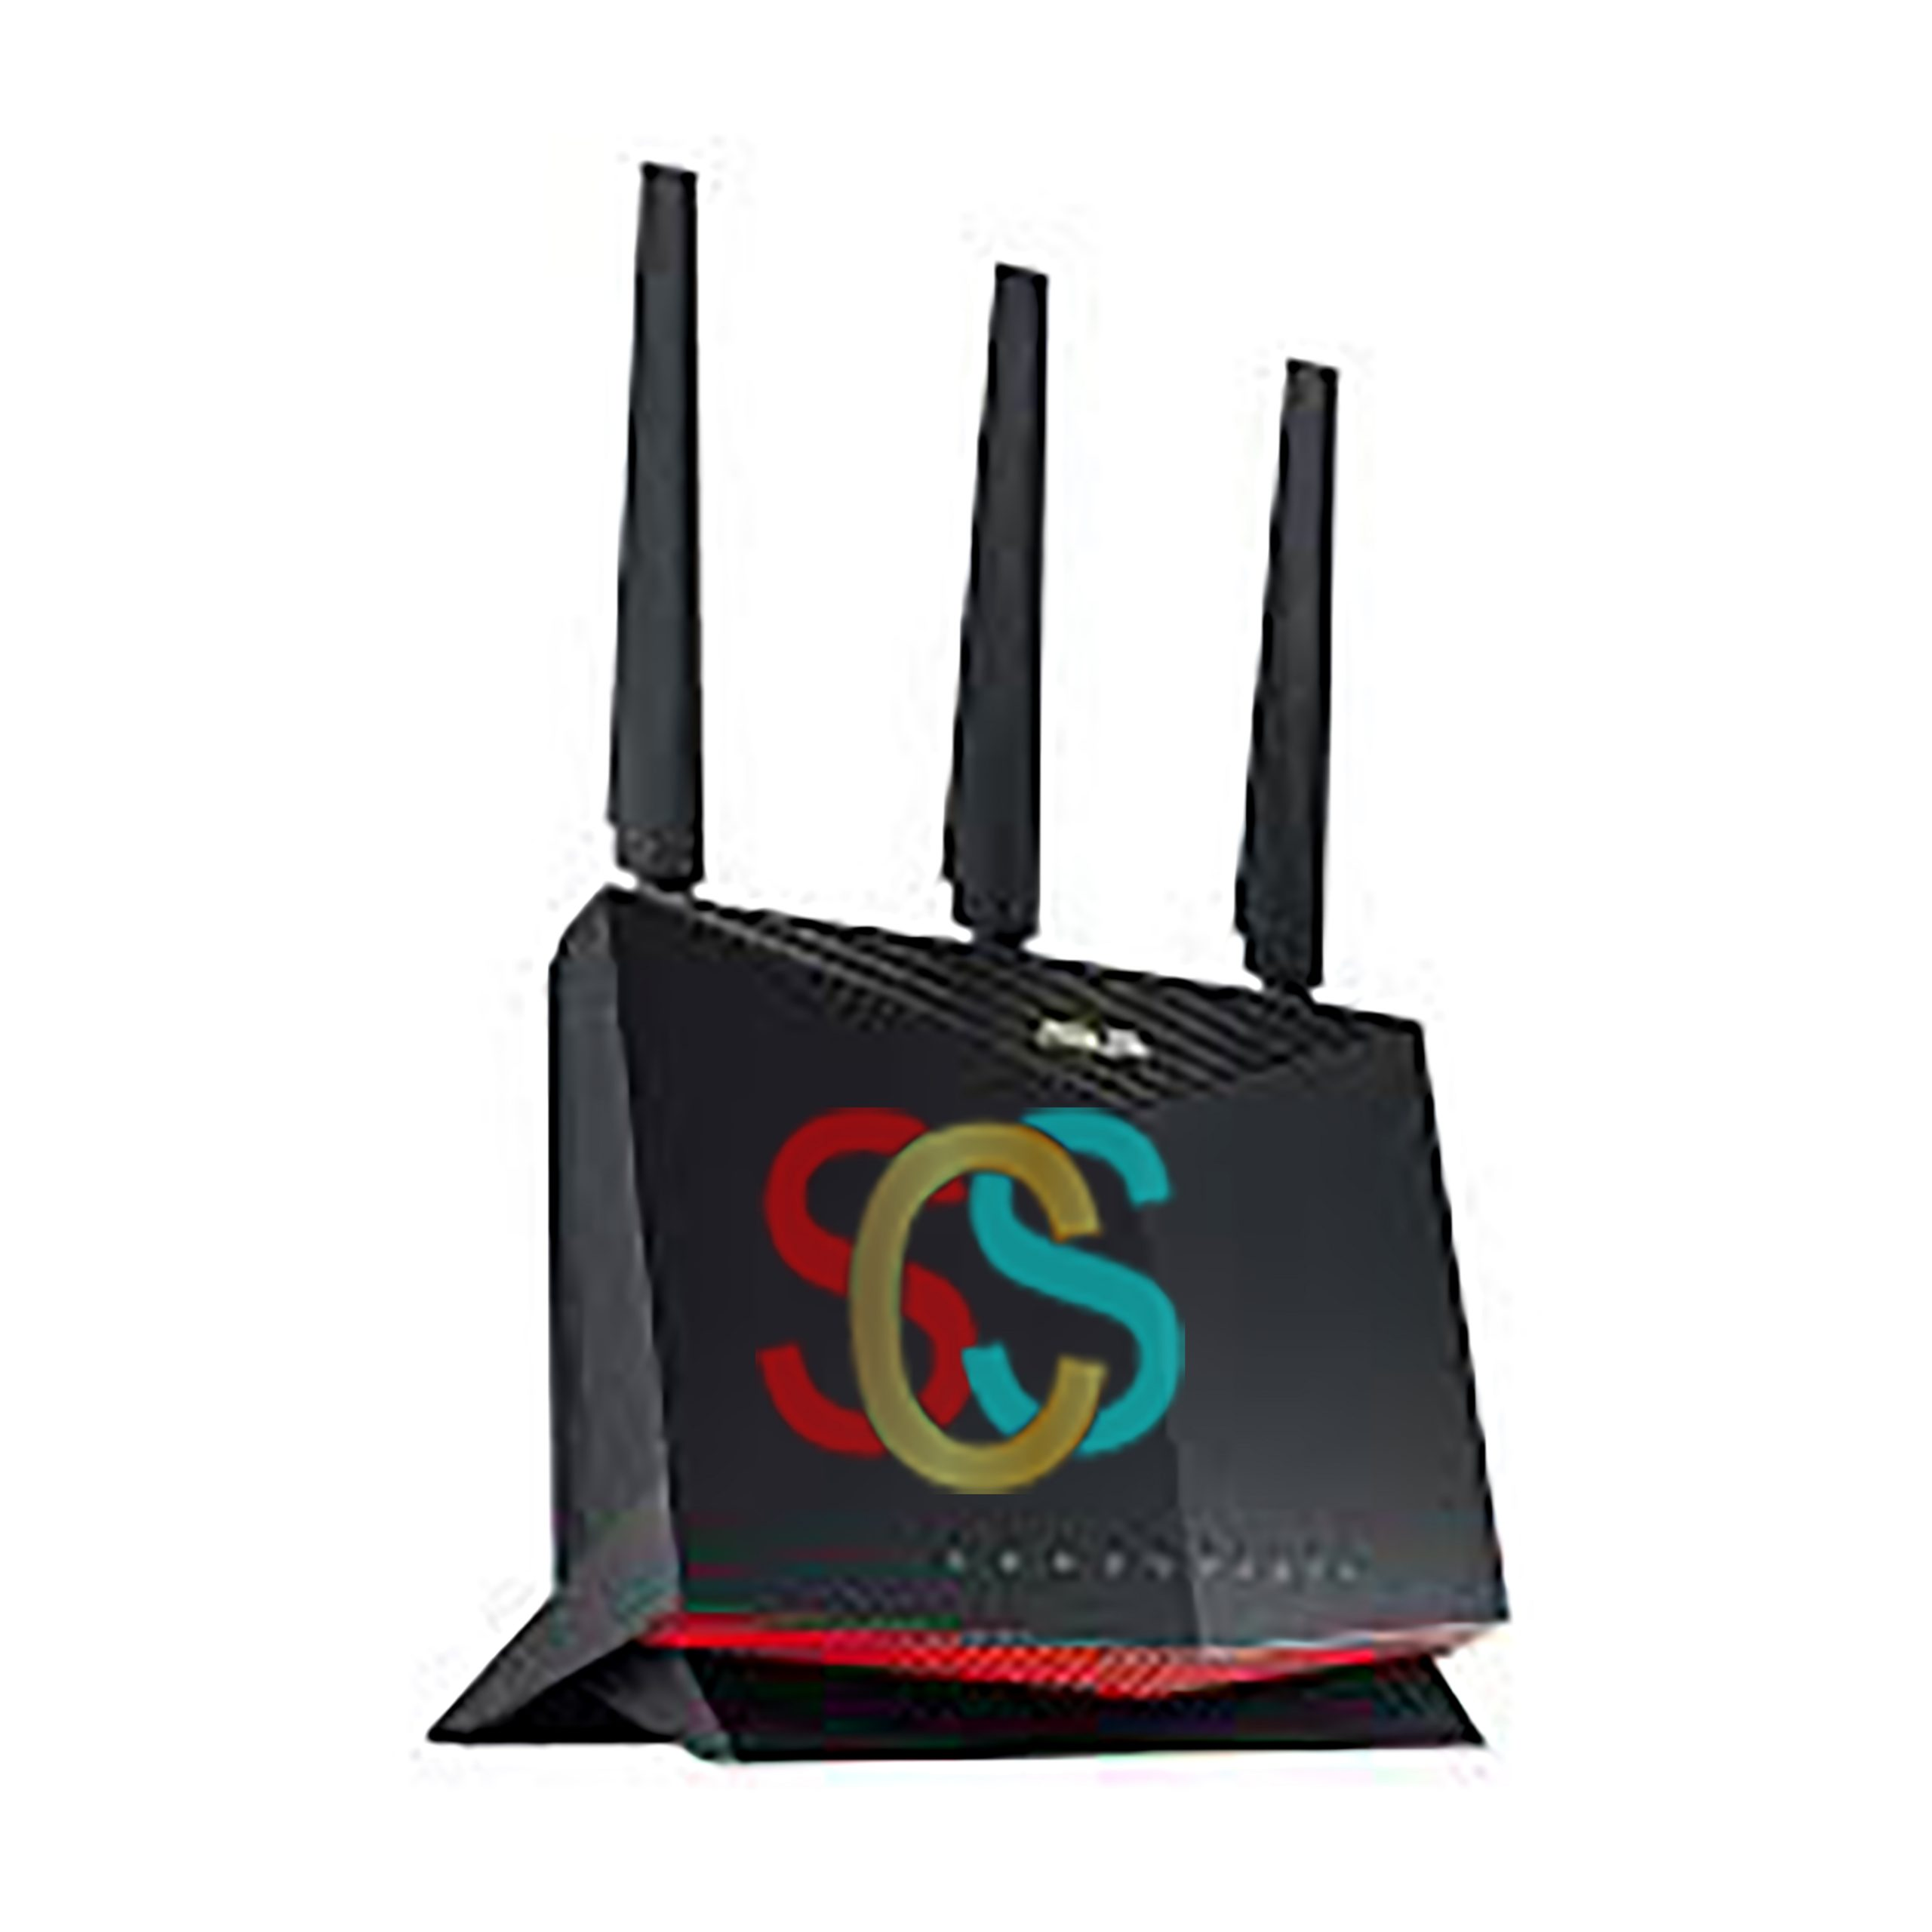 Asus RT-AX86U AX5700 Mbps Gigabit Dual-Band Wi-Fi 6 Router